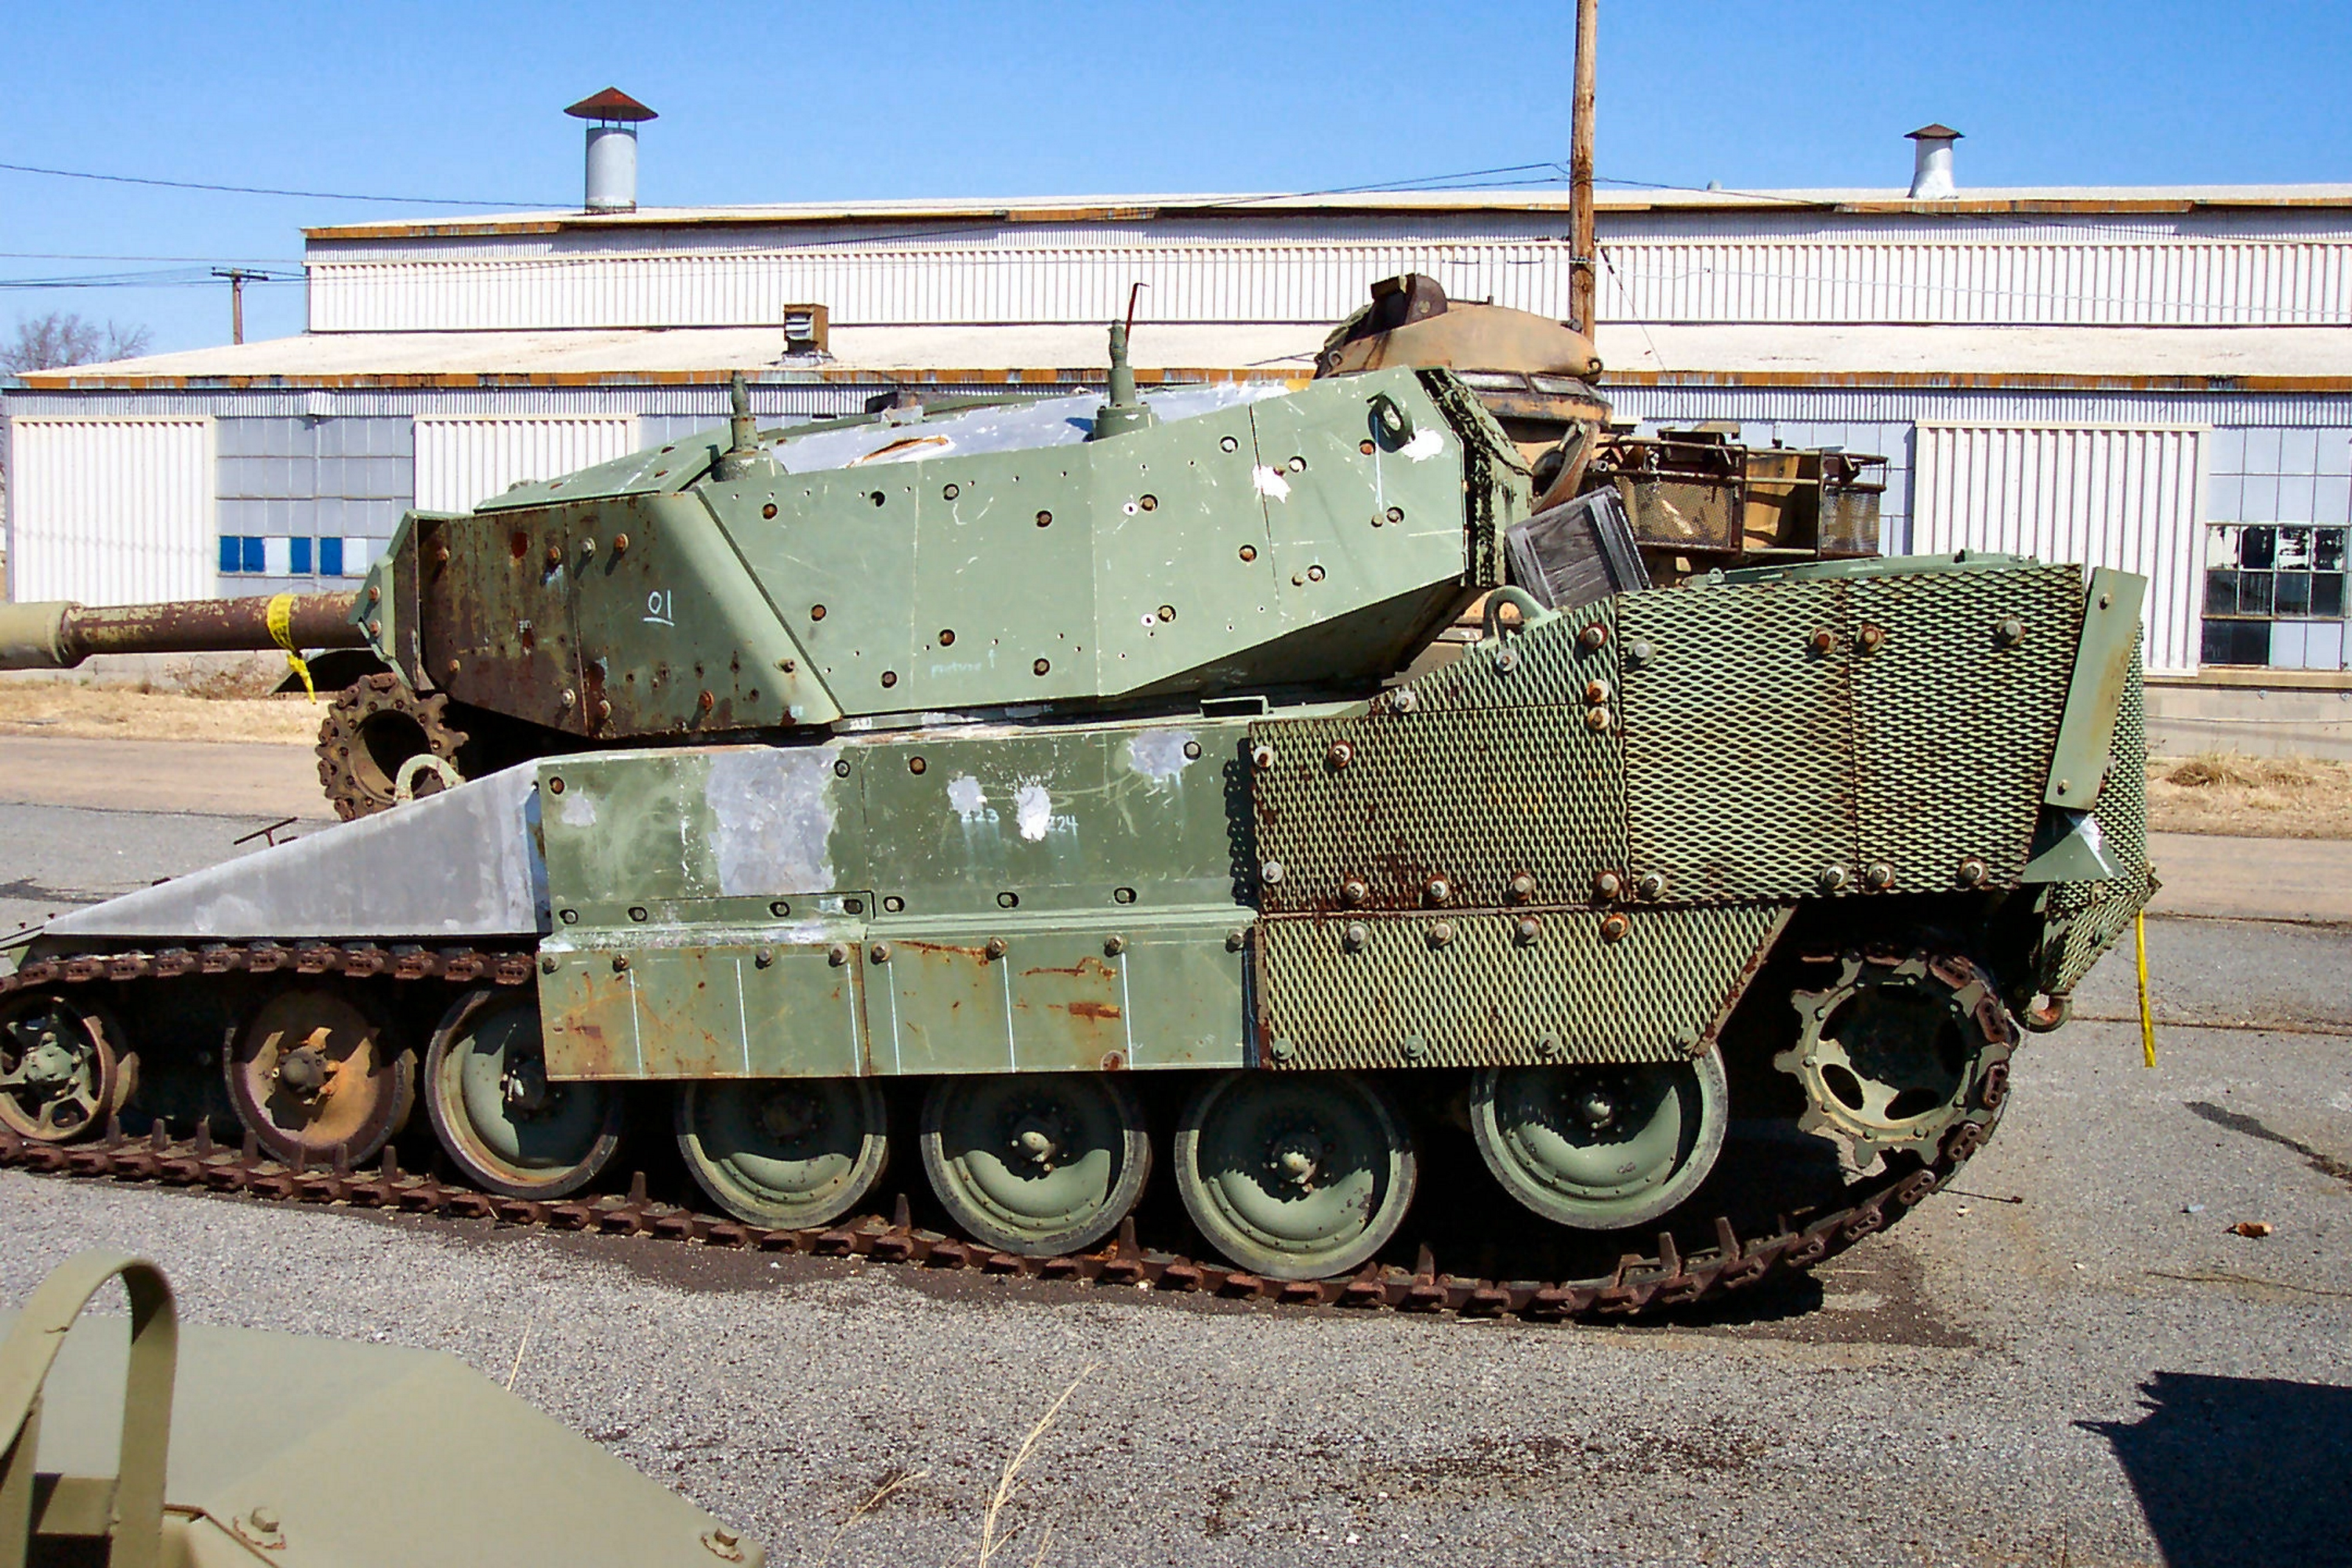 From the 1970s to the 1990s the standard light tank of the US Army was the M551 Sheridan and the military was actively looking to replace it with another maneuverable tracked vehicle with